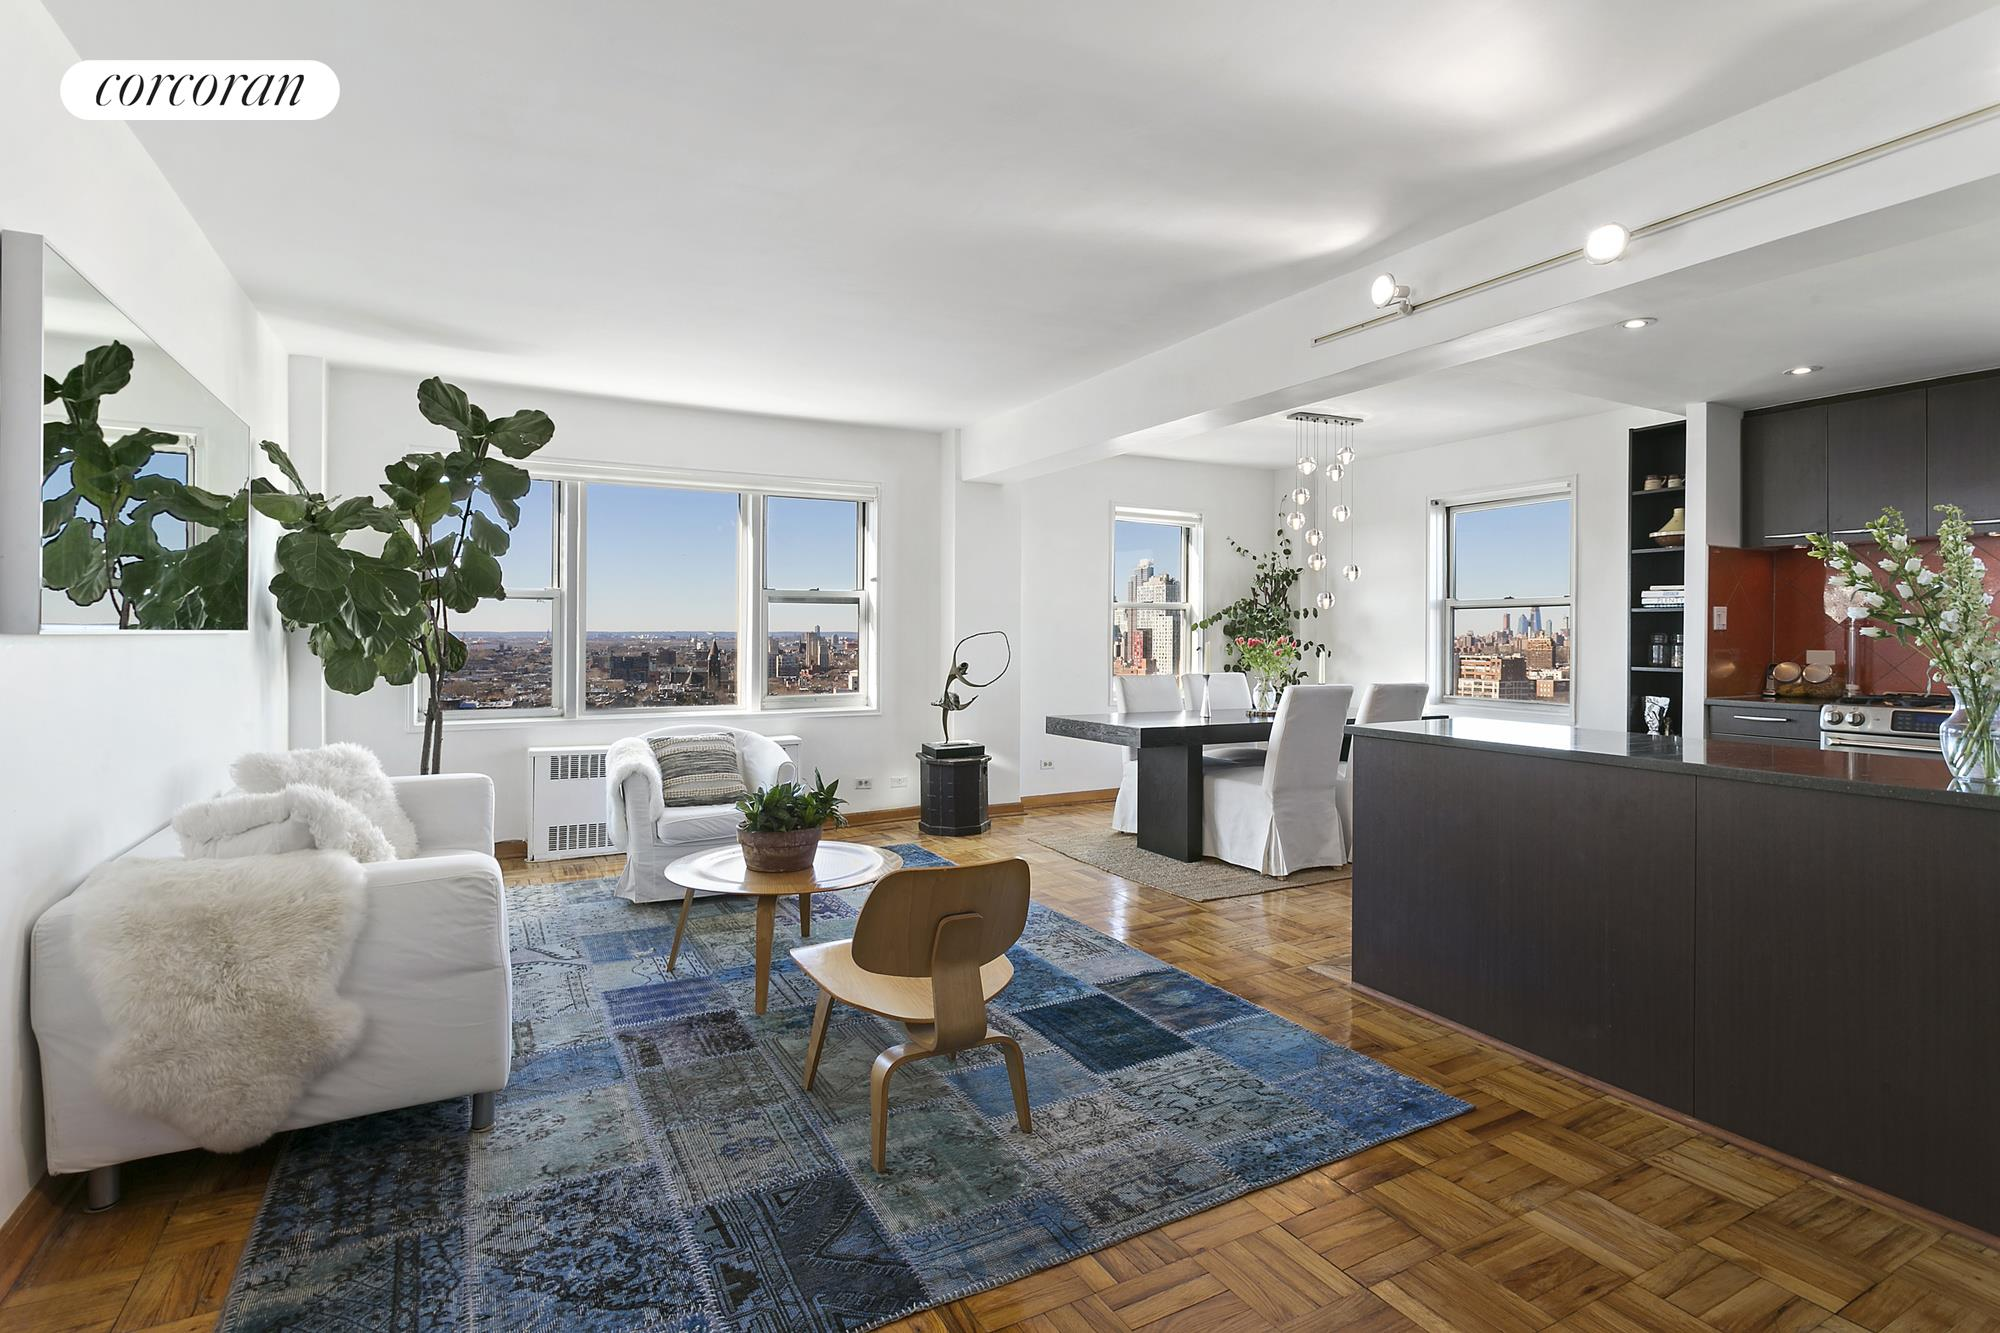 Corcoran, 34 Plaza Street East, Apt. 1207, Prospect Heights Real ...